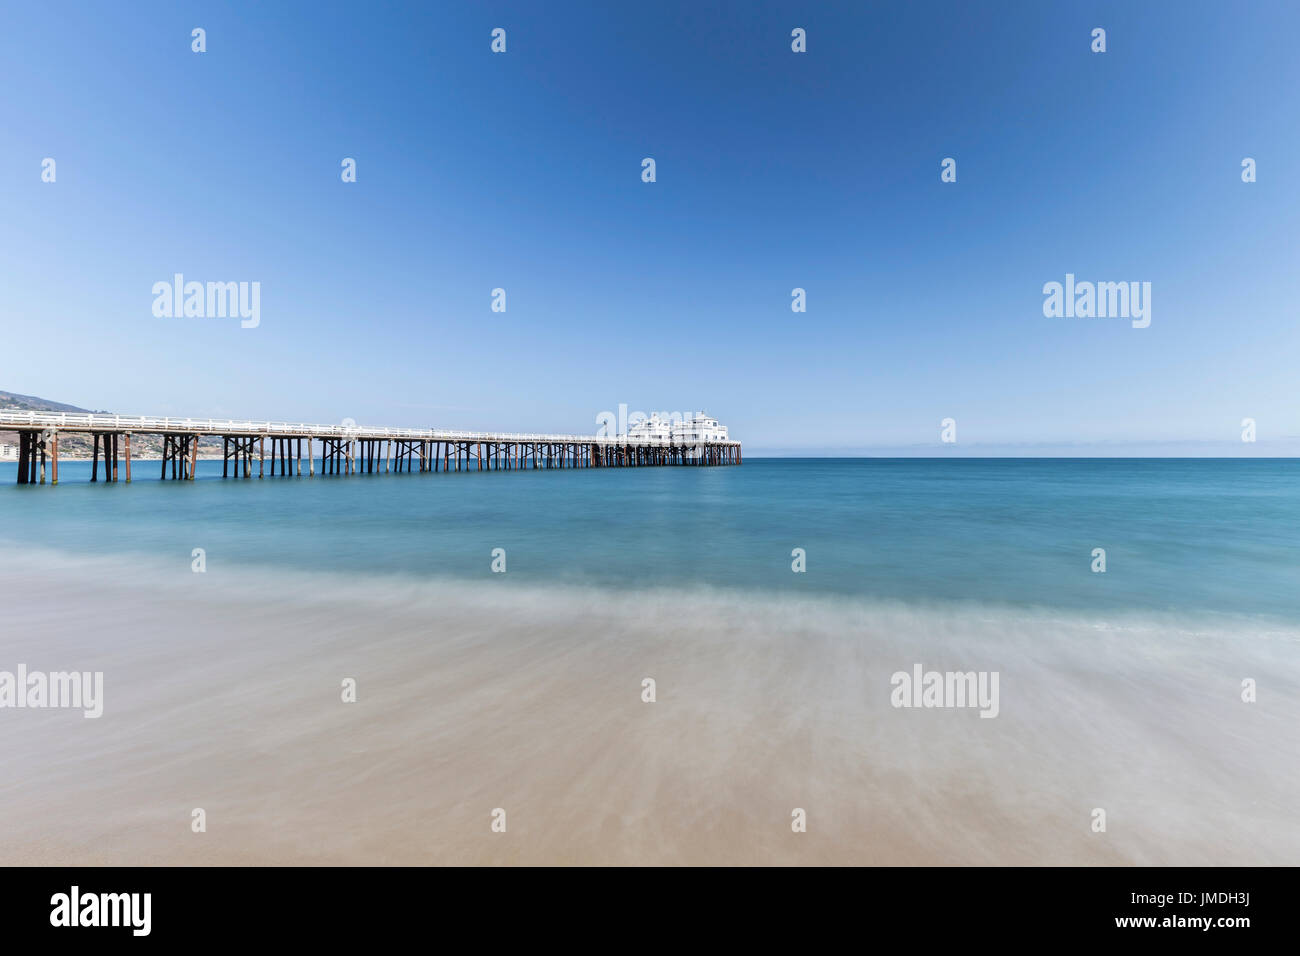 Malibu Pier avec le flou de l'eau près de Los Angeles en Californie du Sud. Photo Stock